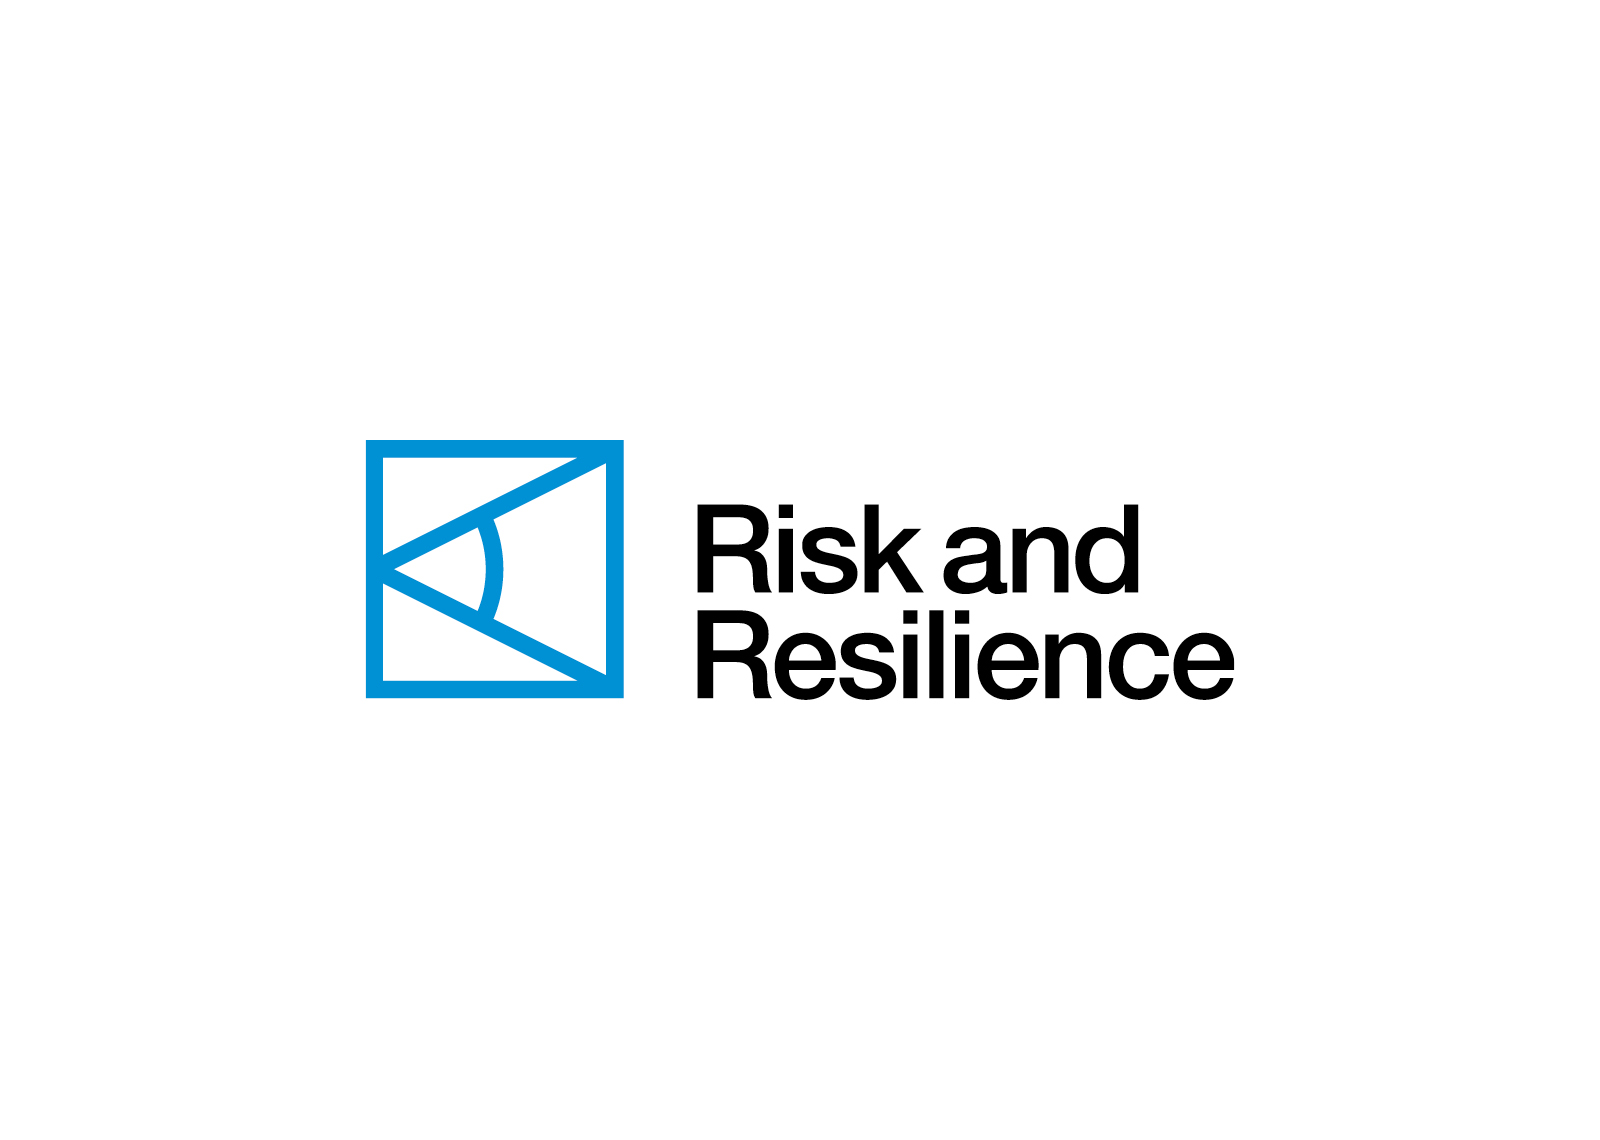 Risk-And-Resilience-Brand-And-Website-Design-Sean-Greer-Brand-And-Website-Design-Belfast-12.jpg